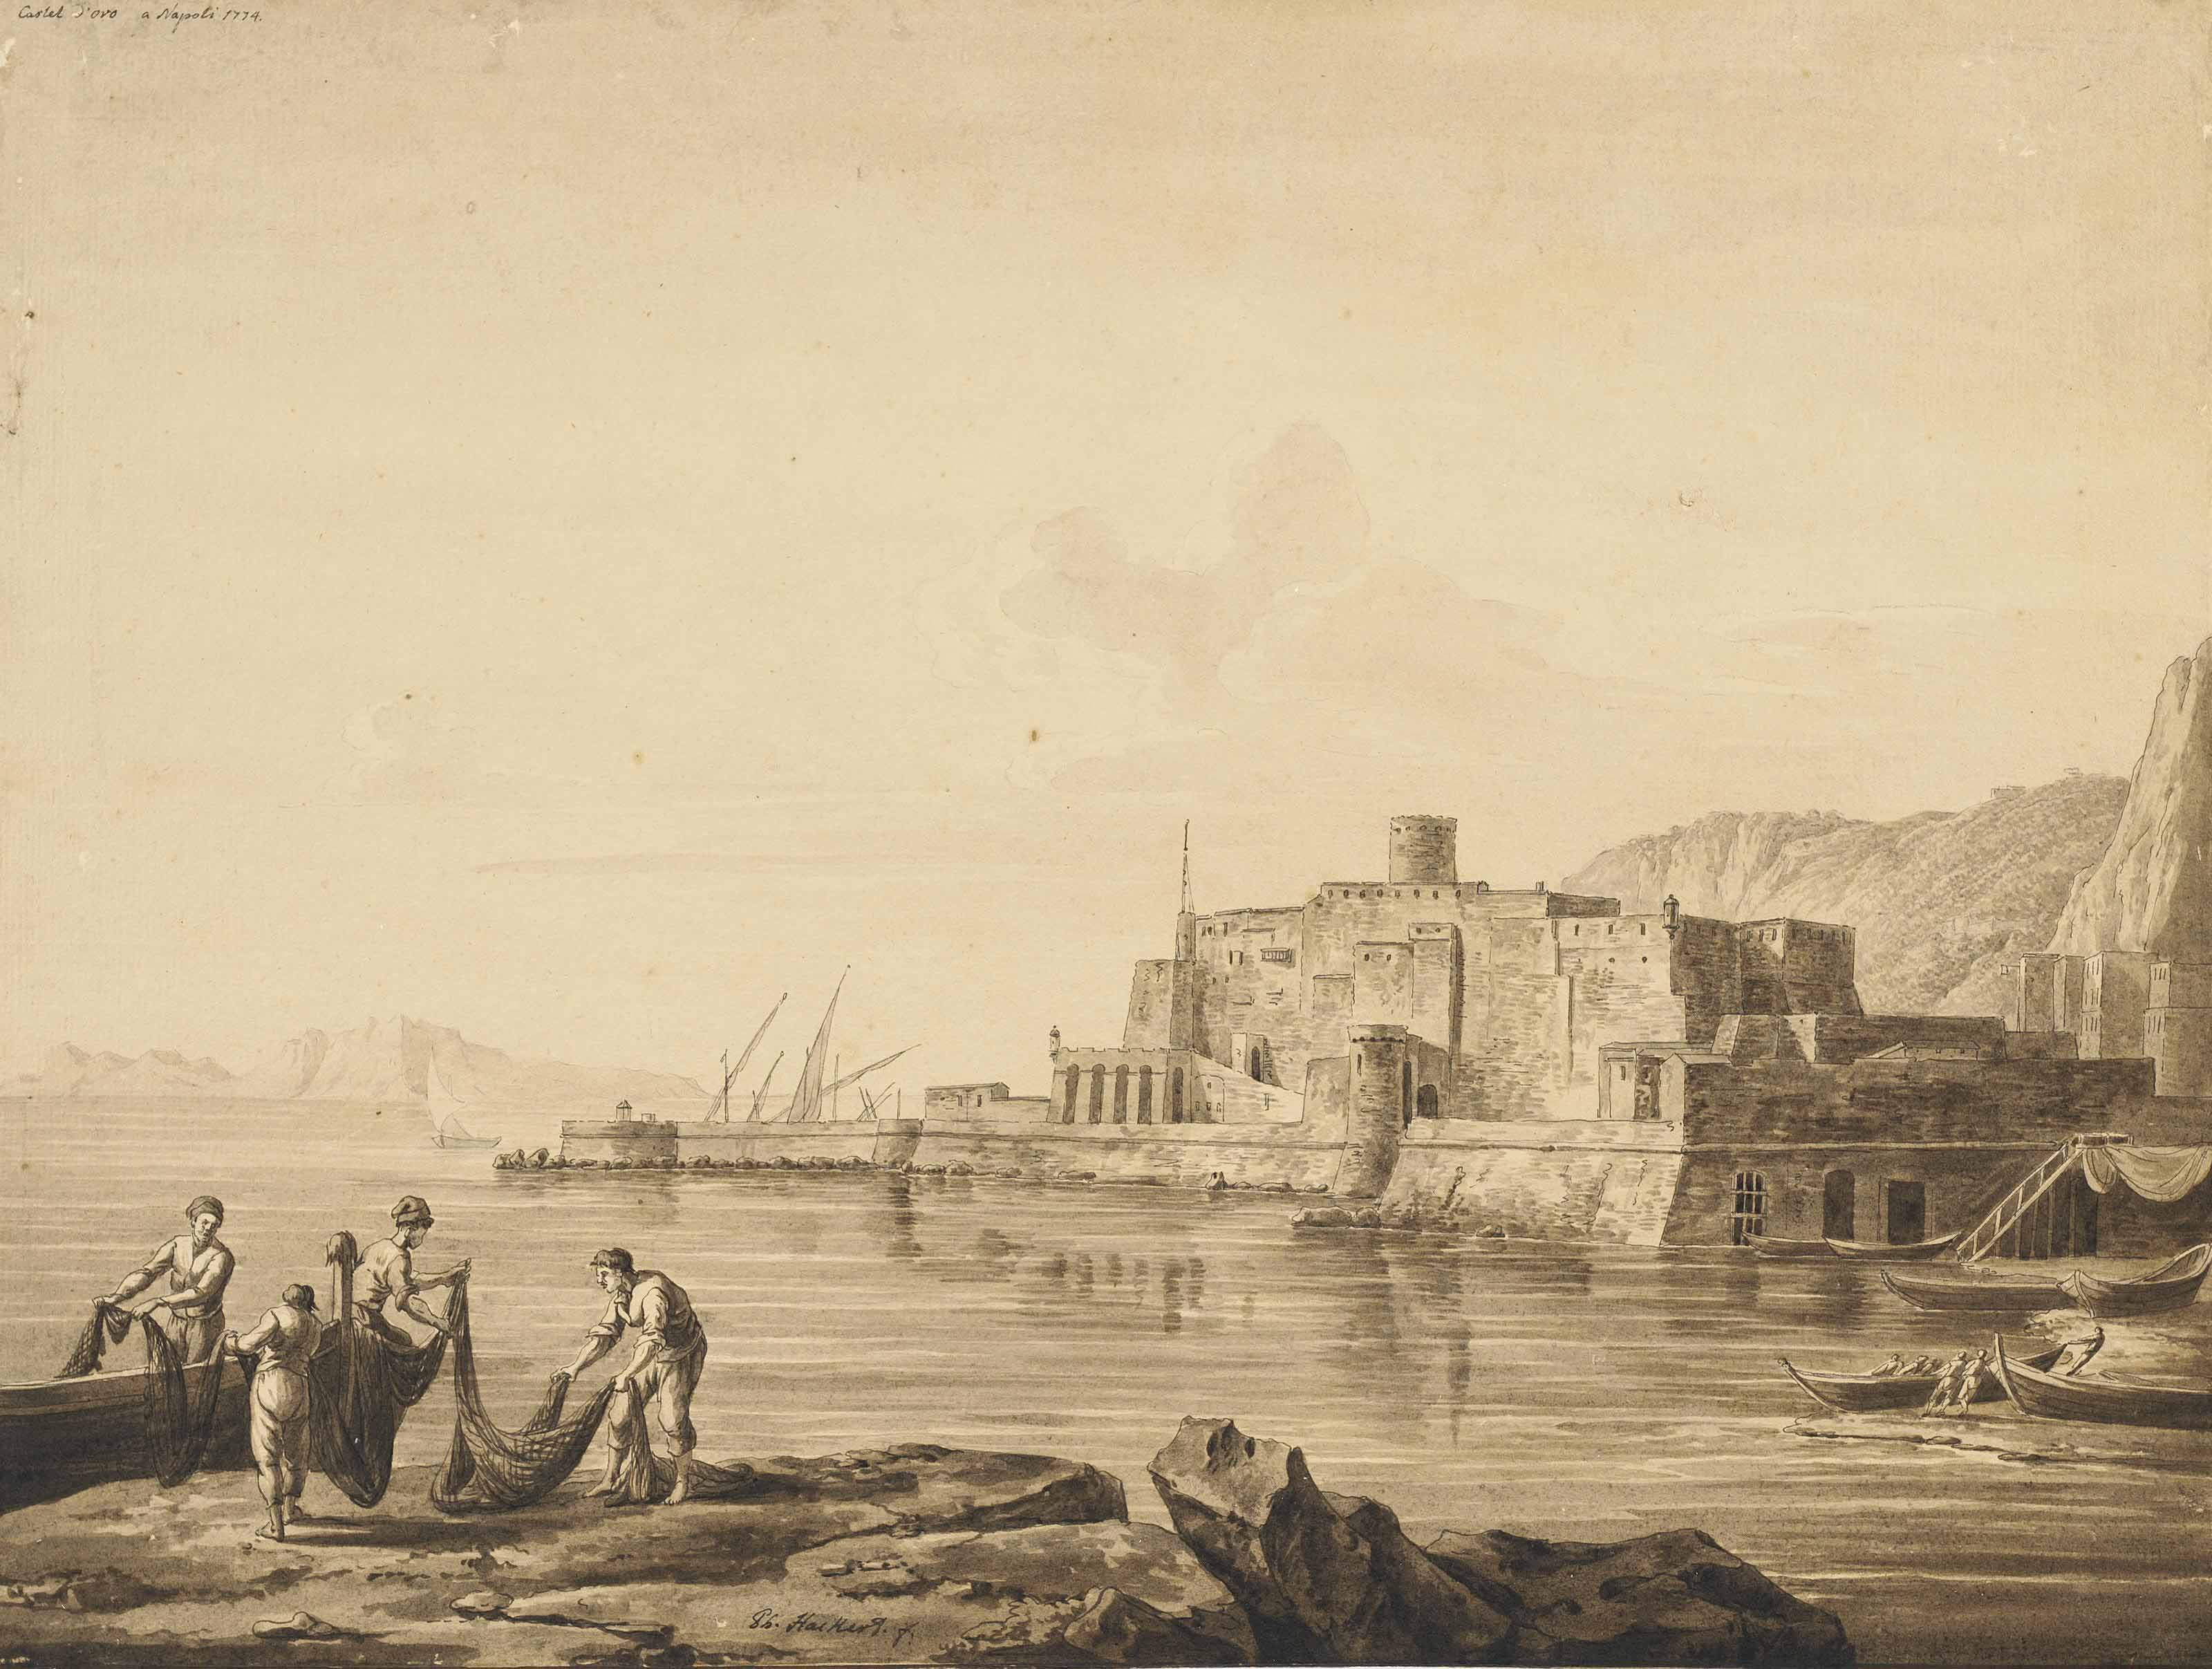 The Castel dell'Ovo, Naples, with fishermen unloading their boats in the foreground